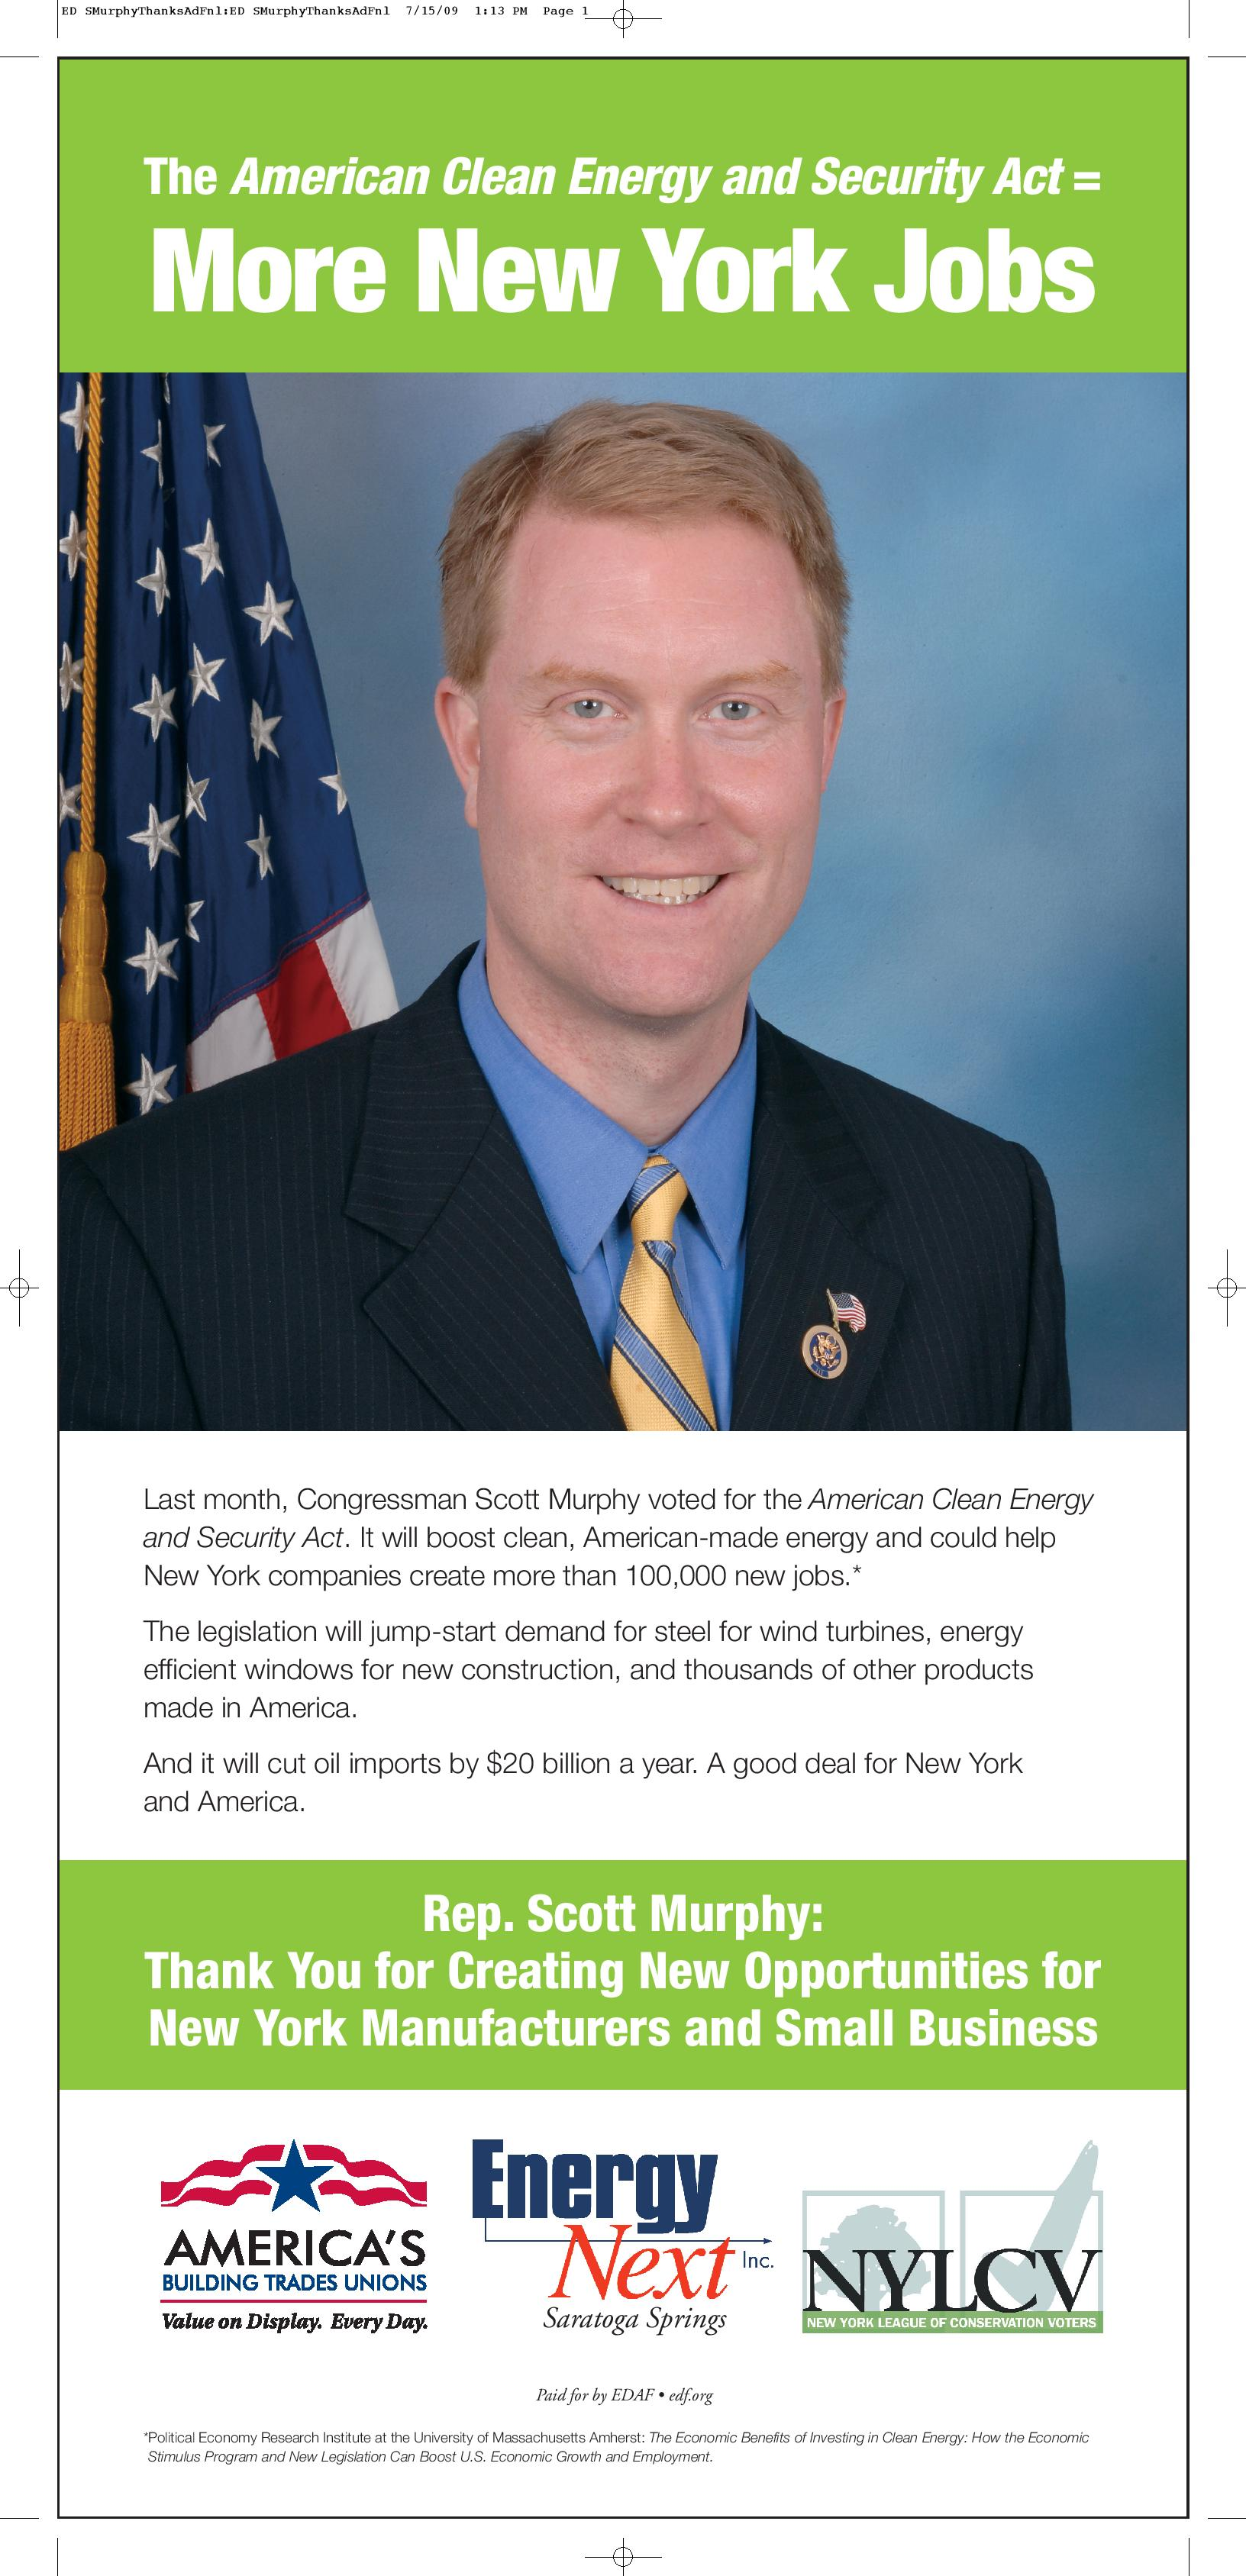 Thank You for Supporting the American Clean Energy and Security Act: Rep. Scott Murphy